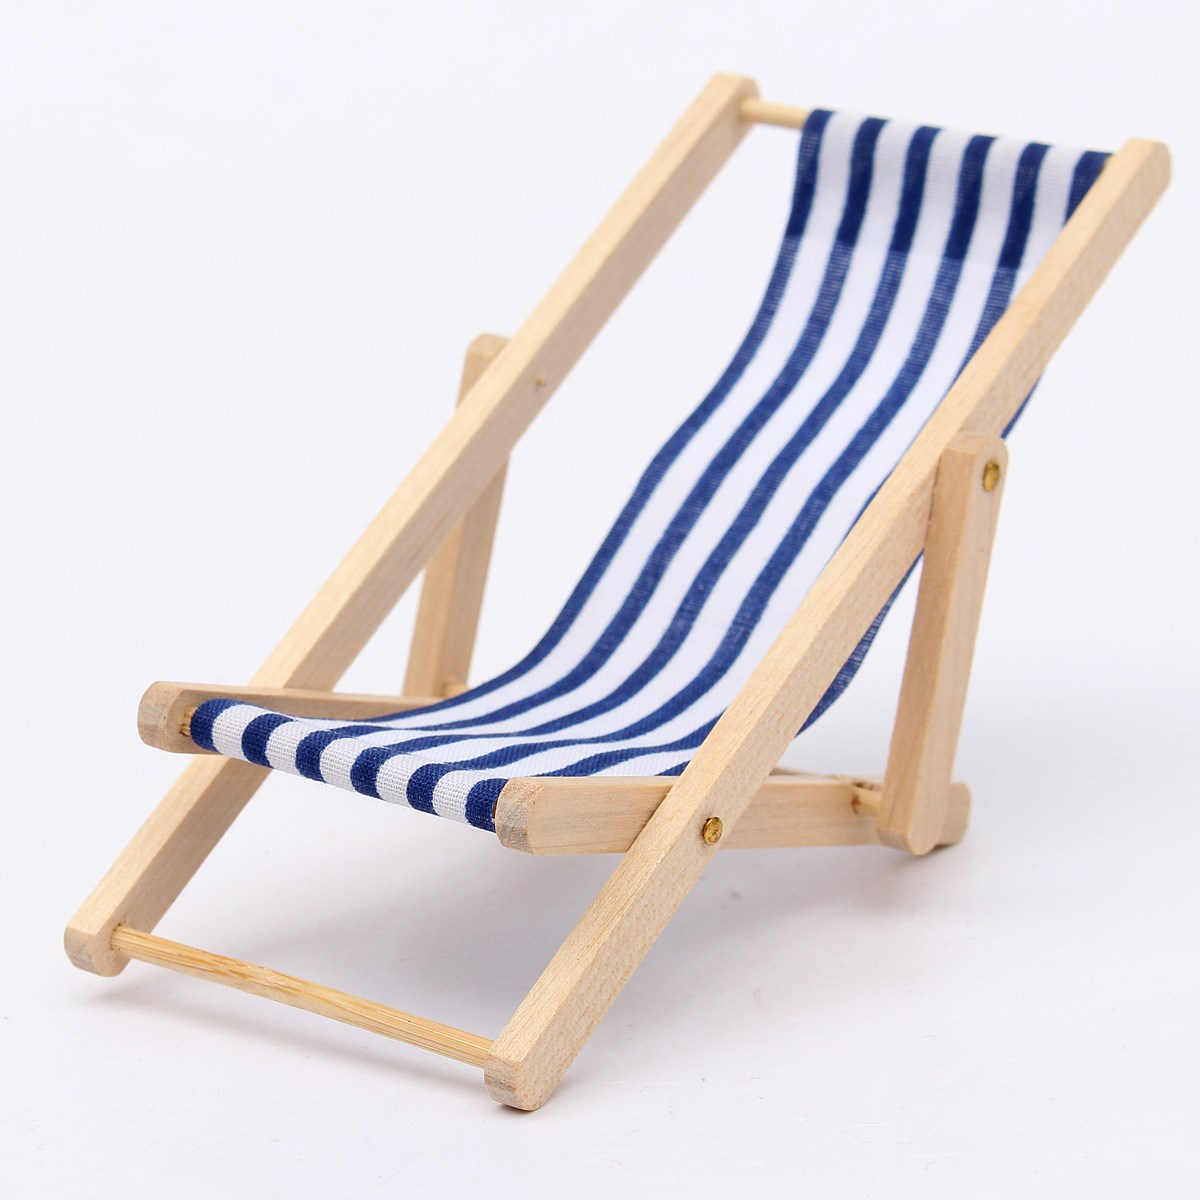 Folding Wood Beach Chair Us 4 98 1 12 Scale Lovely Miniature Foldable Wooden Deckchair Lounge Beach Chair For Dolls House Color In Green Pink Blue In Dolls Accessories From